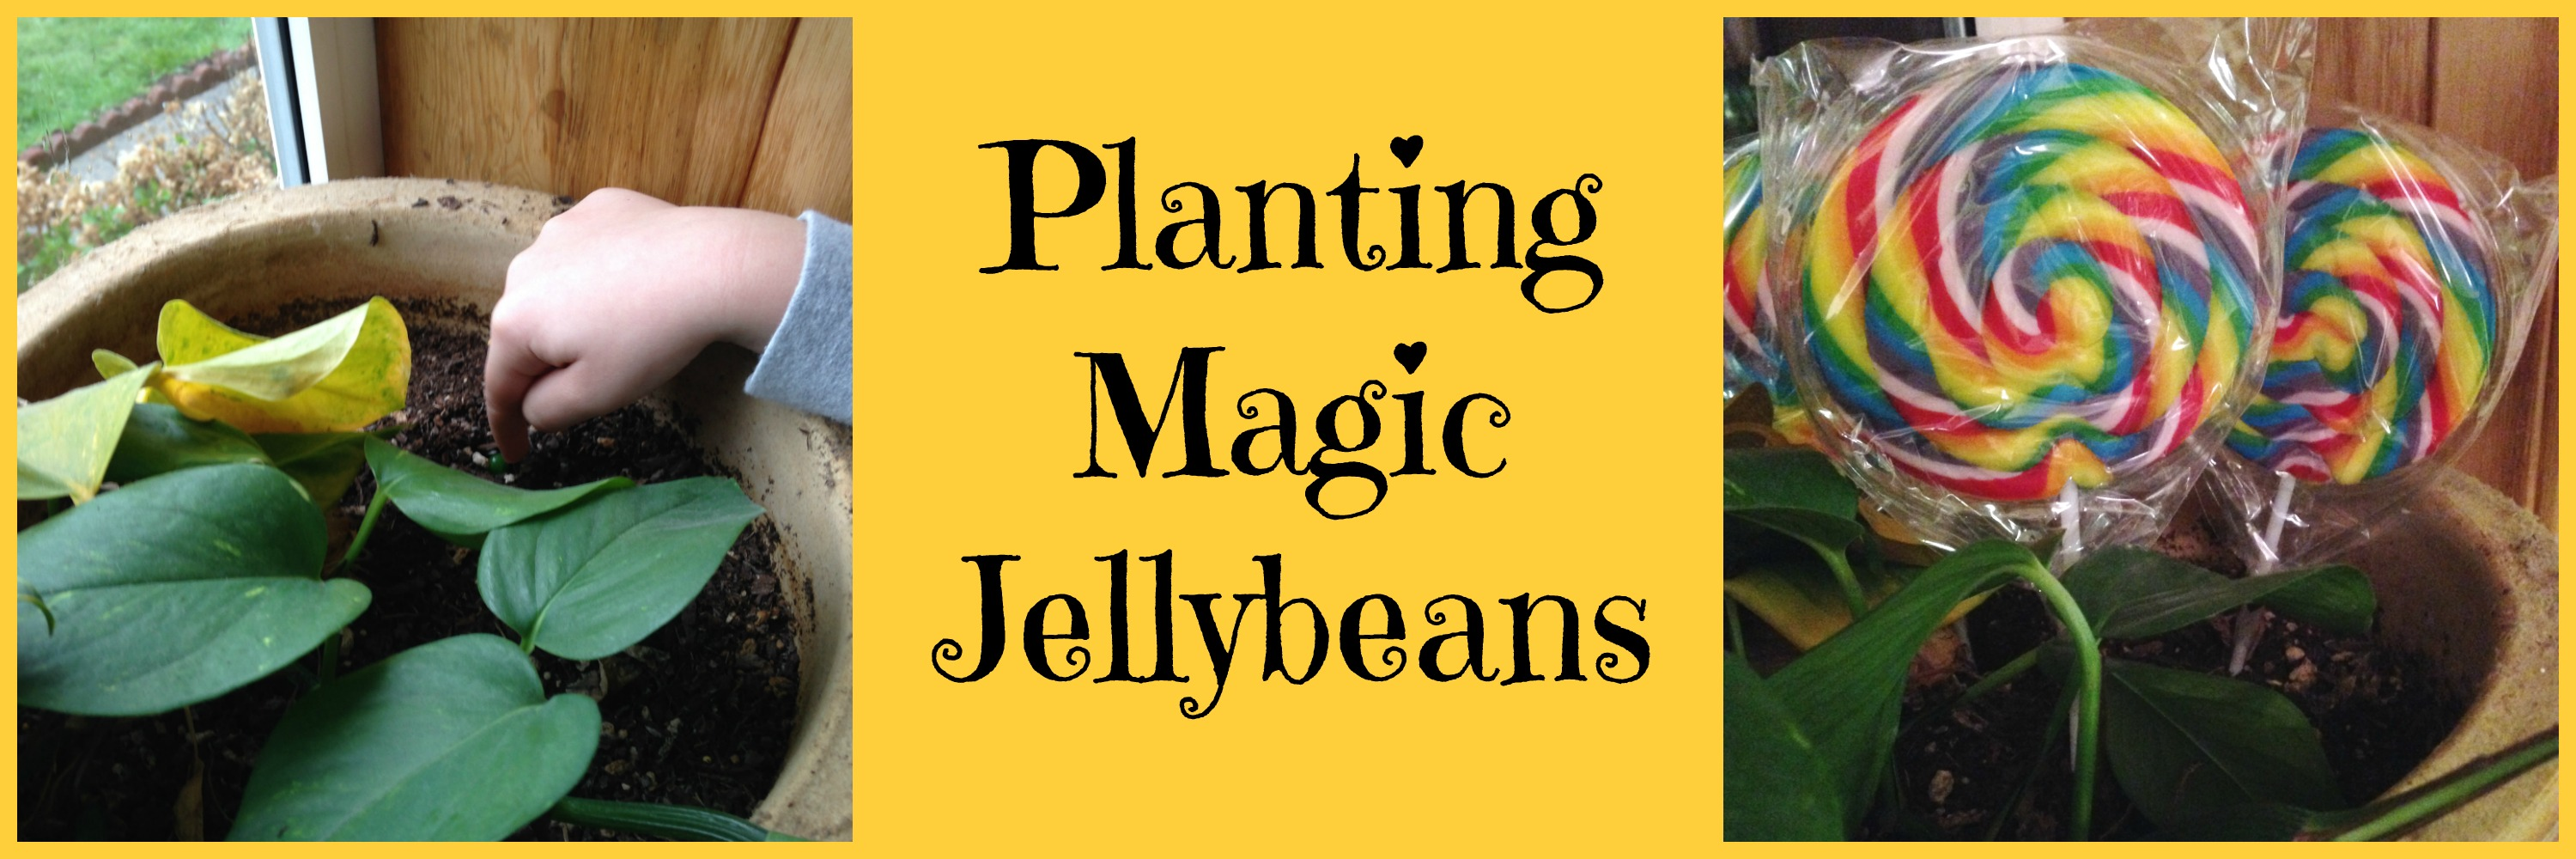 Planting Magic Jellybeans Fun And Easy Easter Tradition